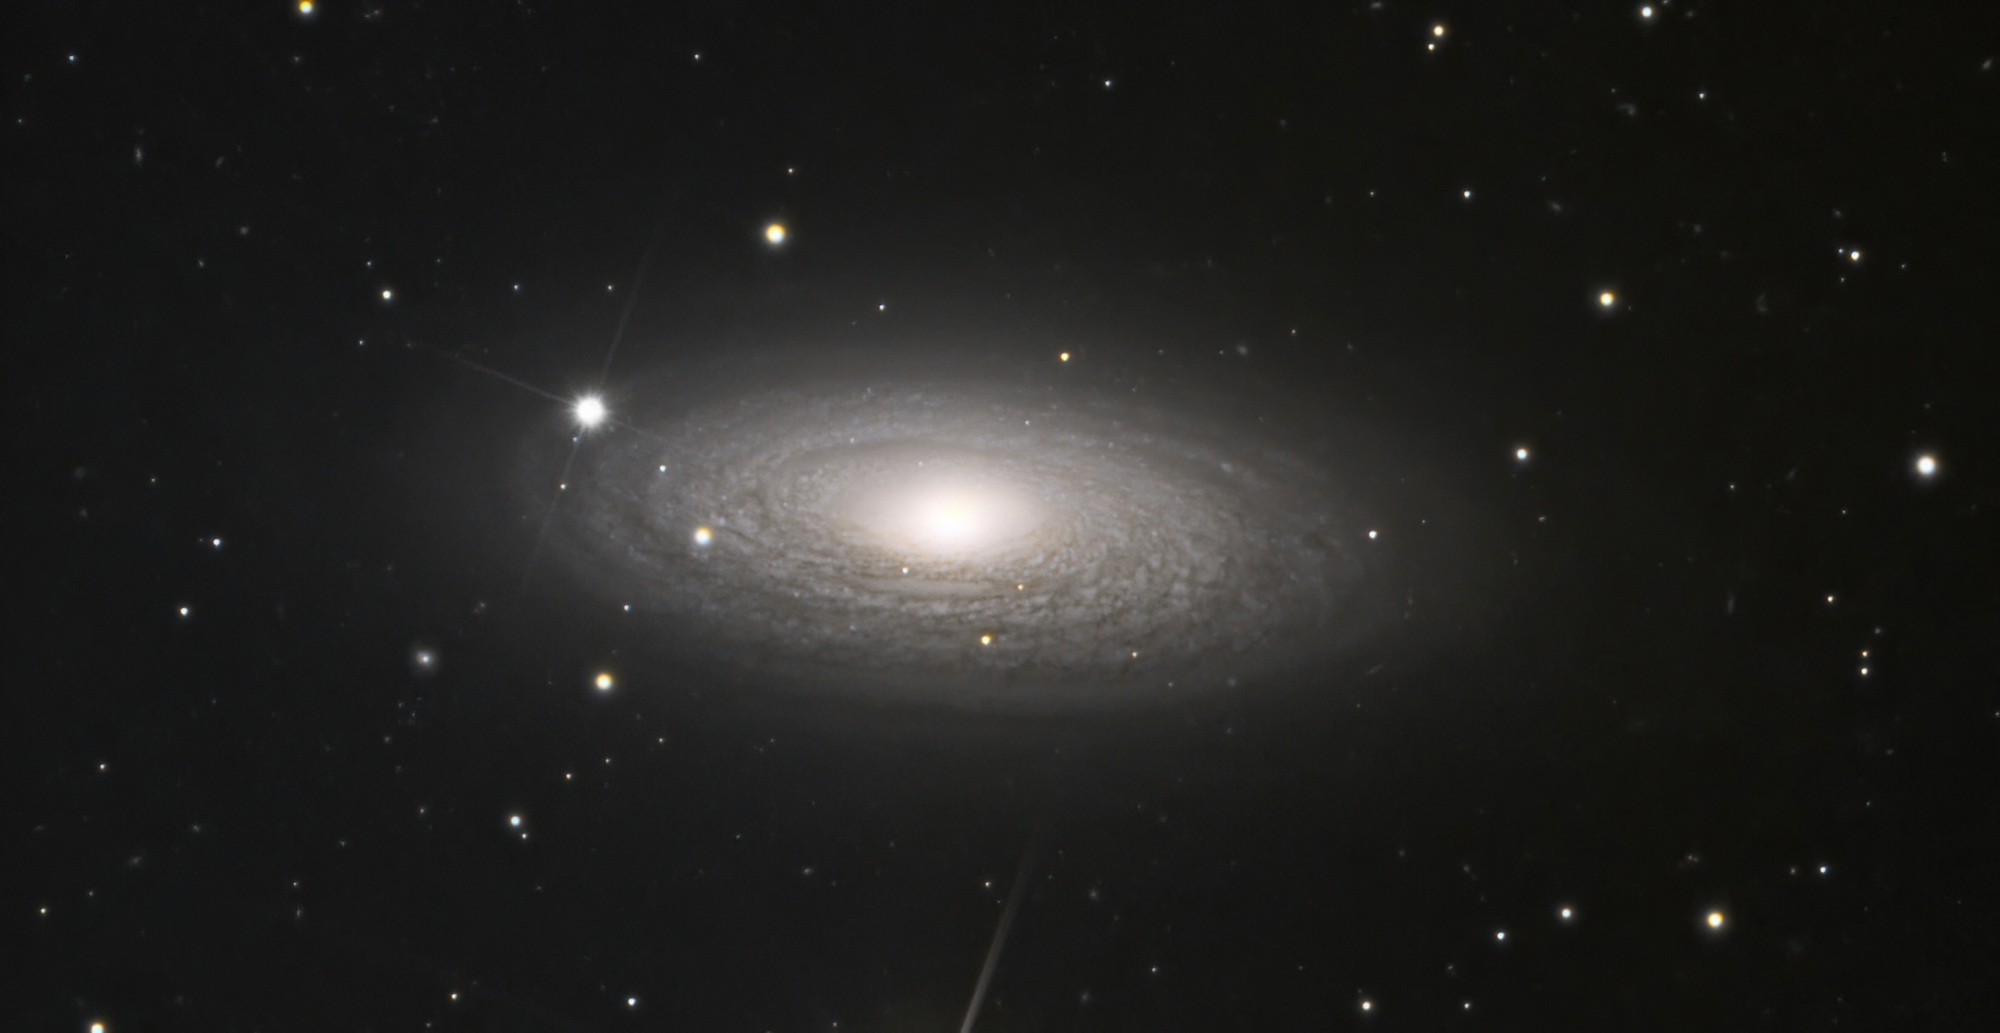 NGC2841-denoise-low-light.thumb.jpeg.7386ed1f212f016282290e0aee9bf24a.jpeg